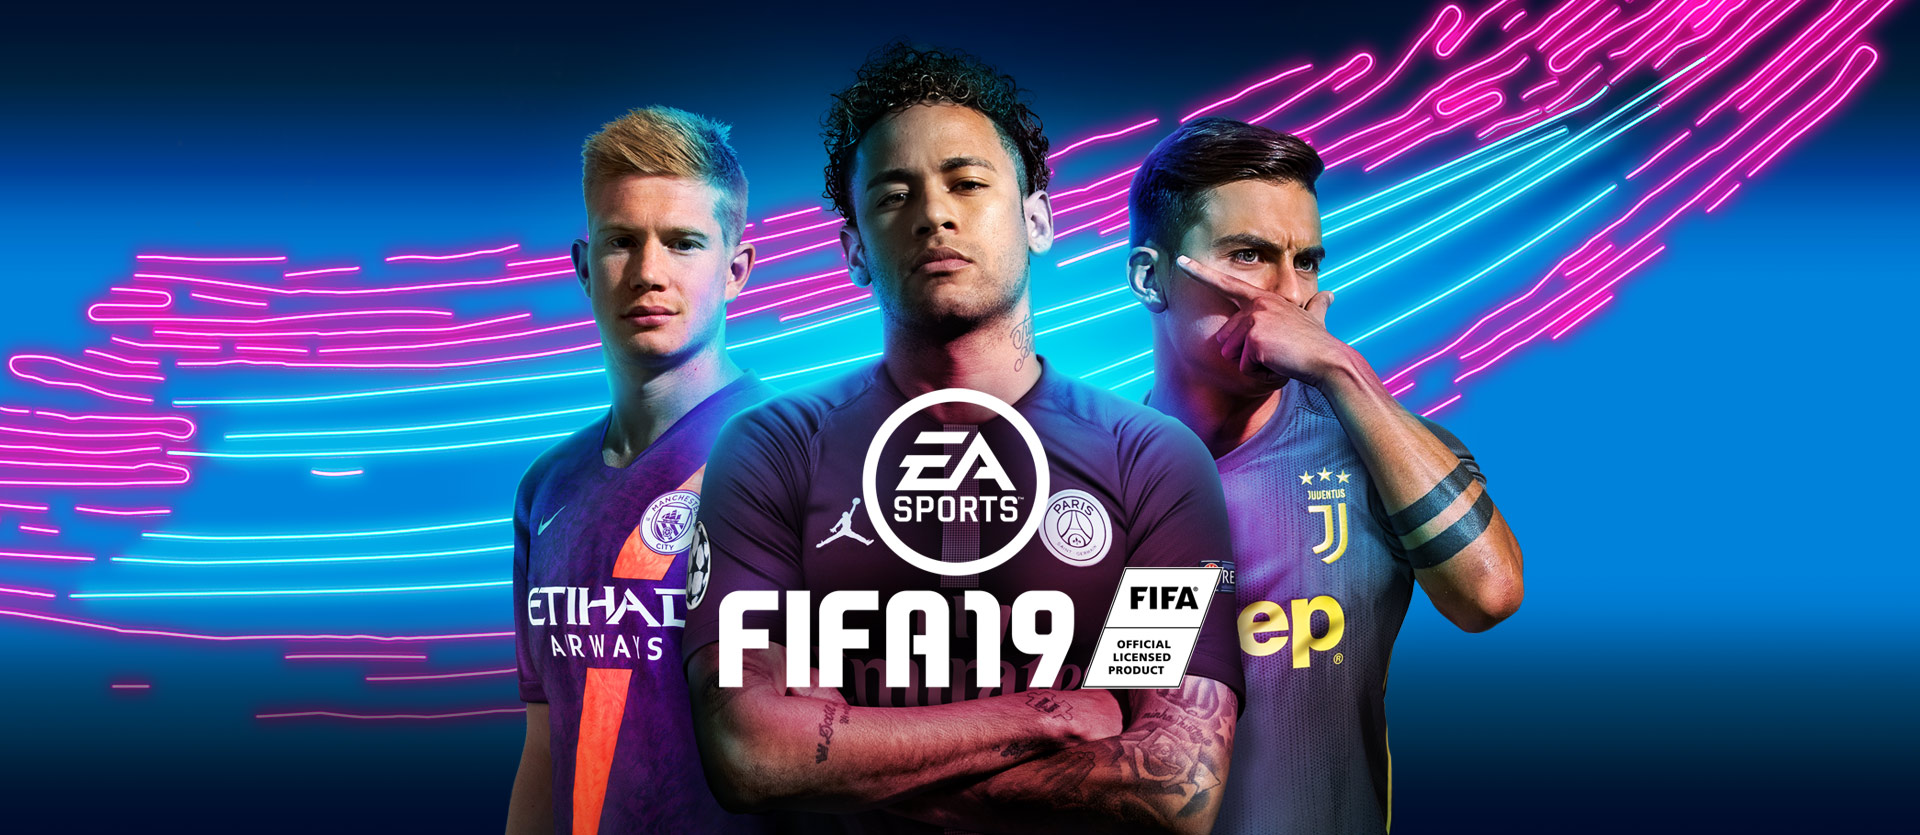 FIFA19 Ultimate Team Kevin De Bruyne, Neymar, and Paulo Dybala posing with ultimate team jerseys